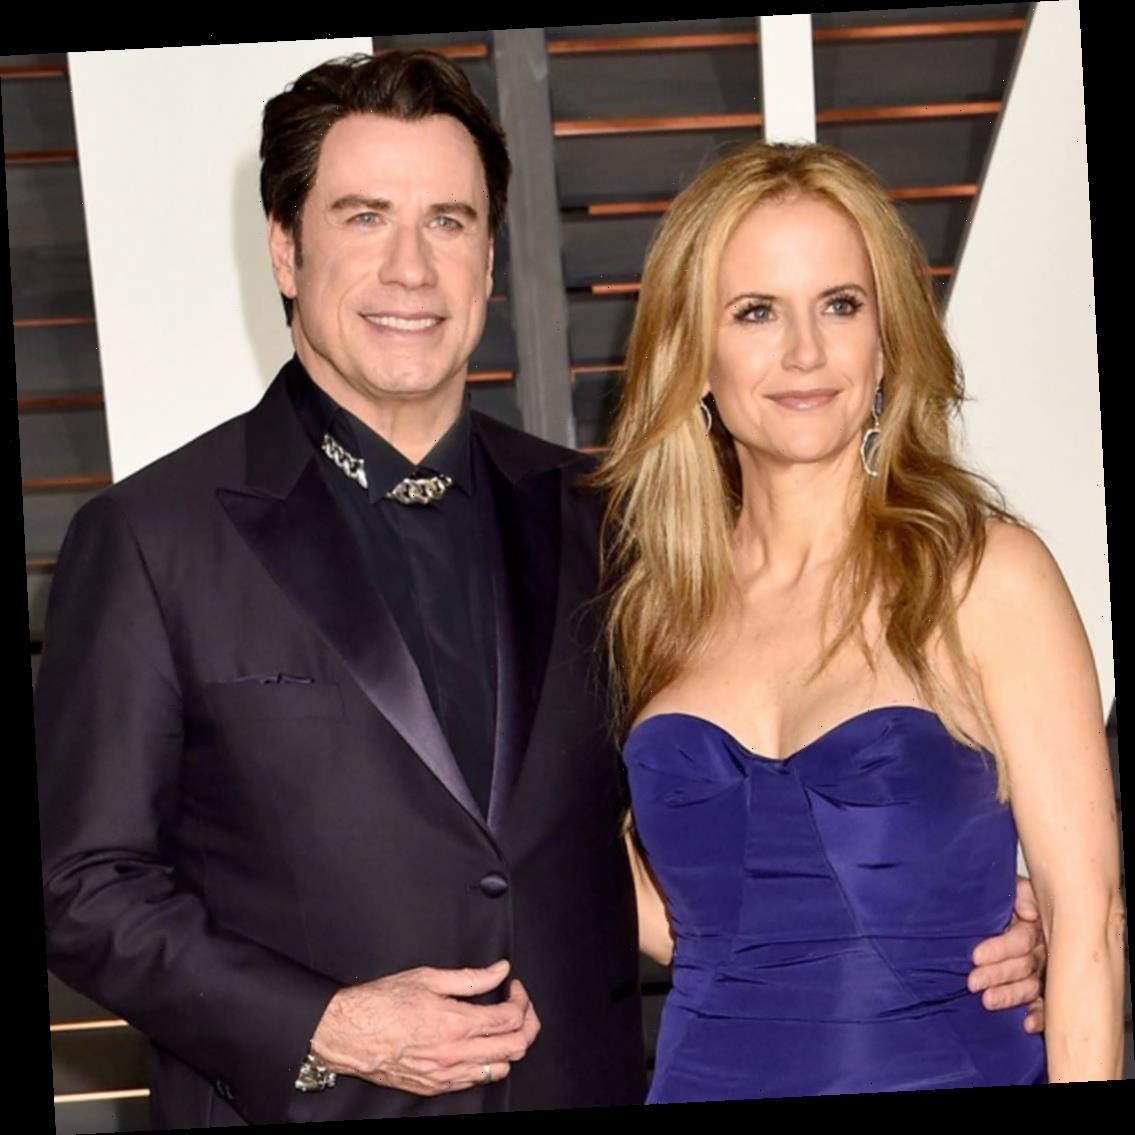 Inside Kelly Preston and John Travolta's Intensely Romantic Love Story